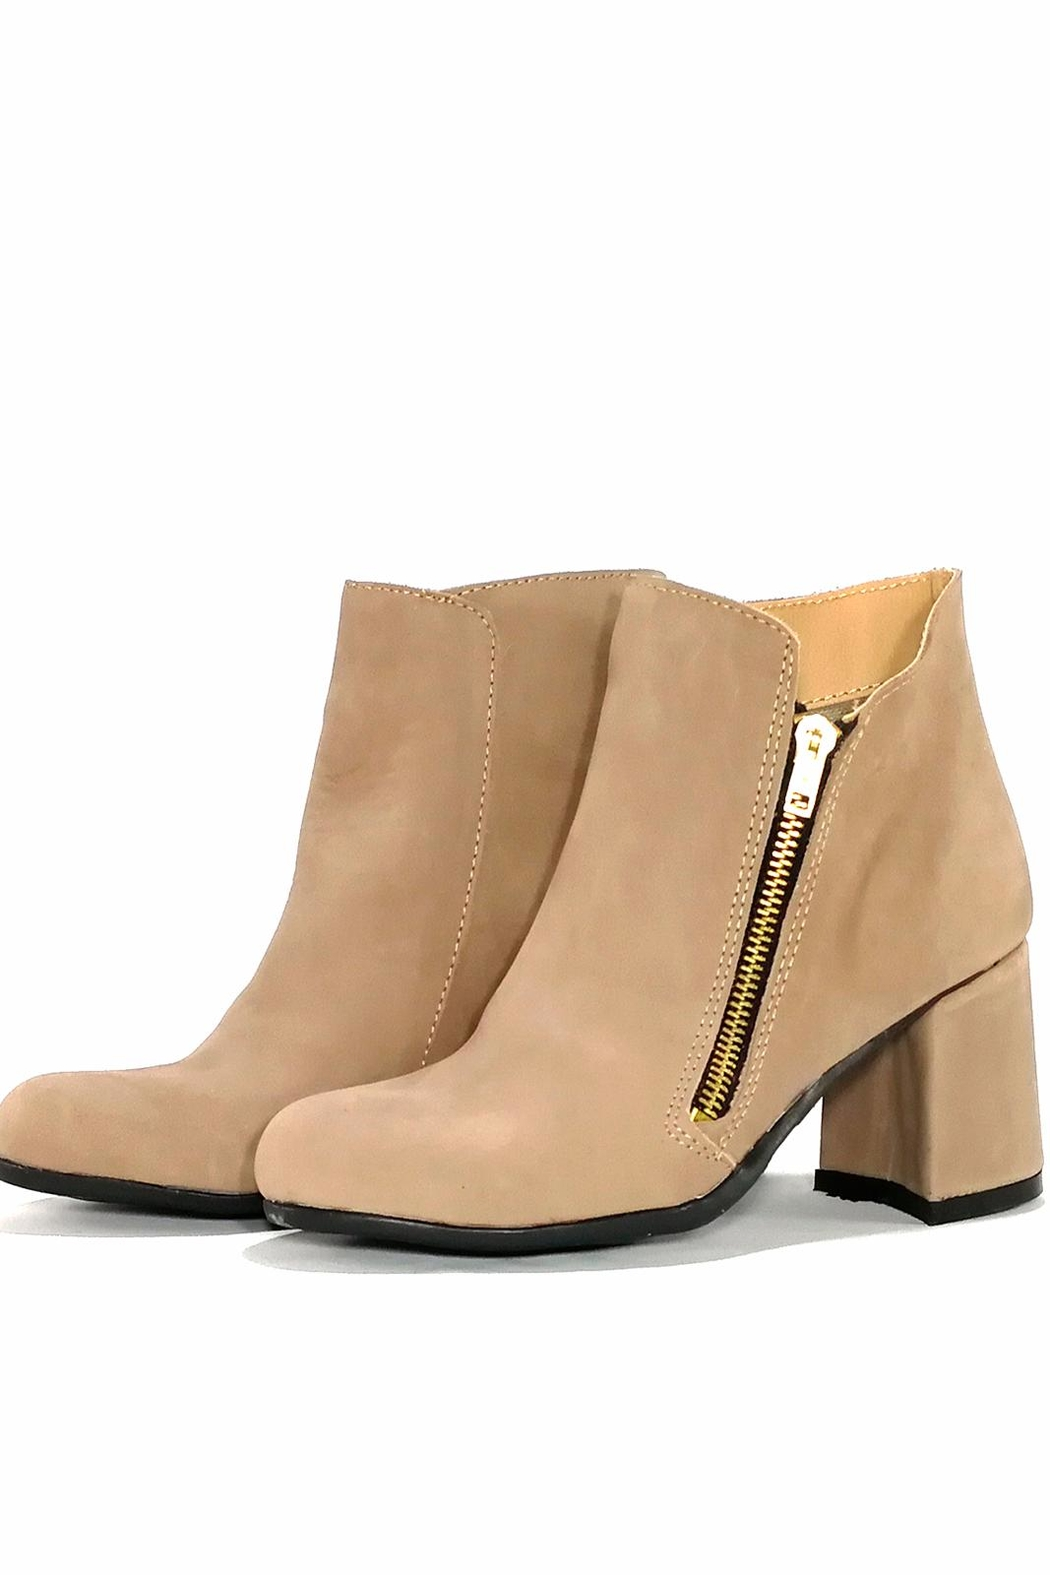 MIYE COLLAZZO Beige Leather Bootie - Front Full Image